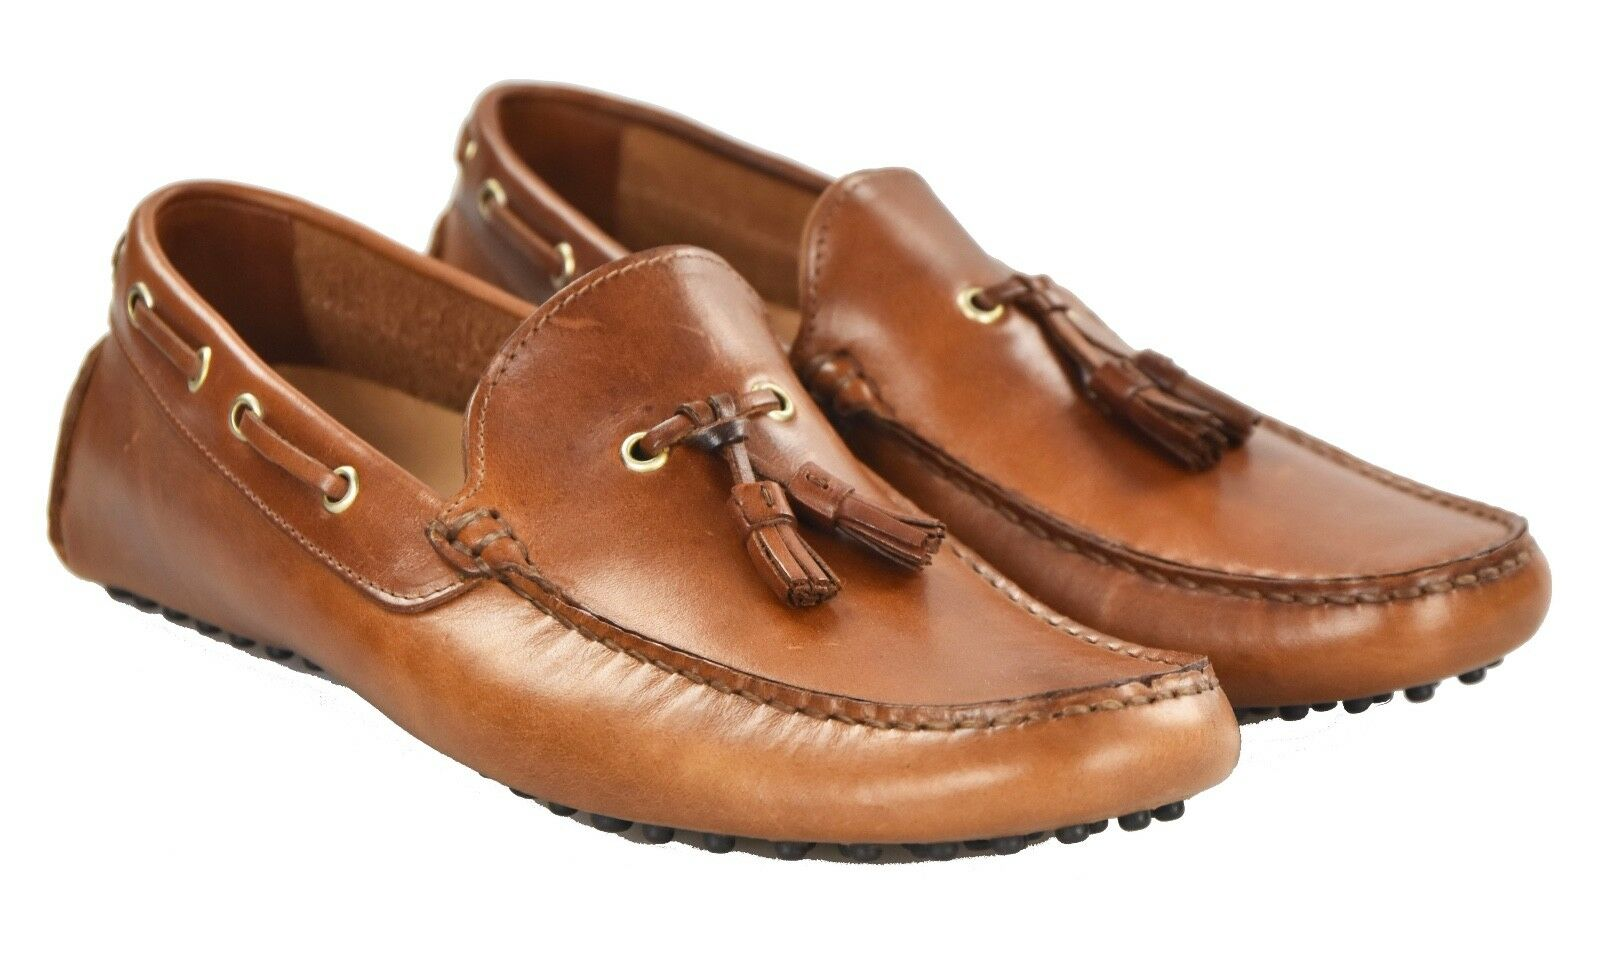 NEW KITON NAPOLI LOAFERS SHOES 100% LEATHER SIZE 9.5 US 42.5 O28